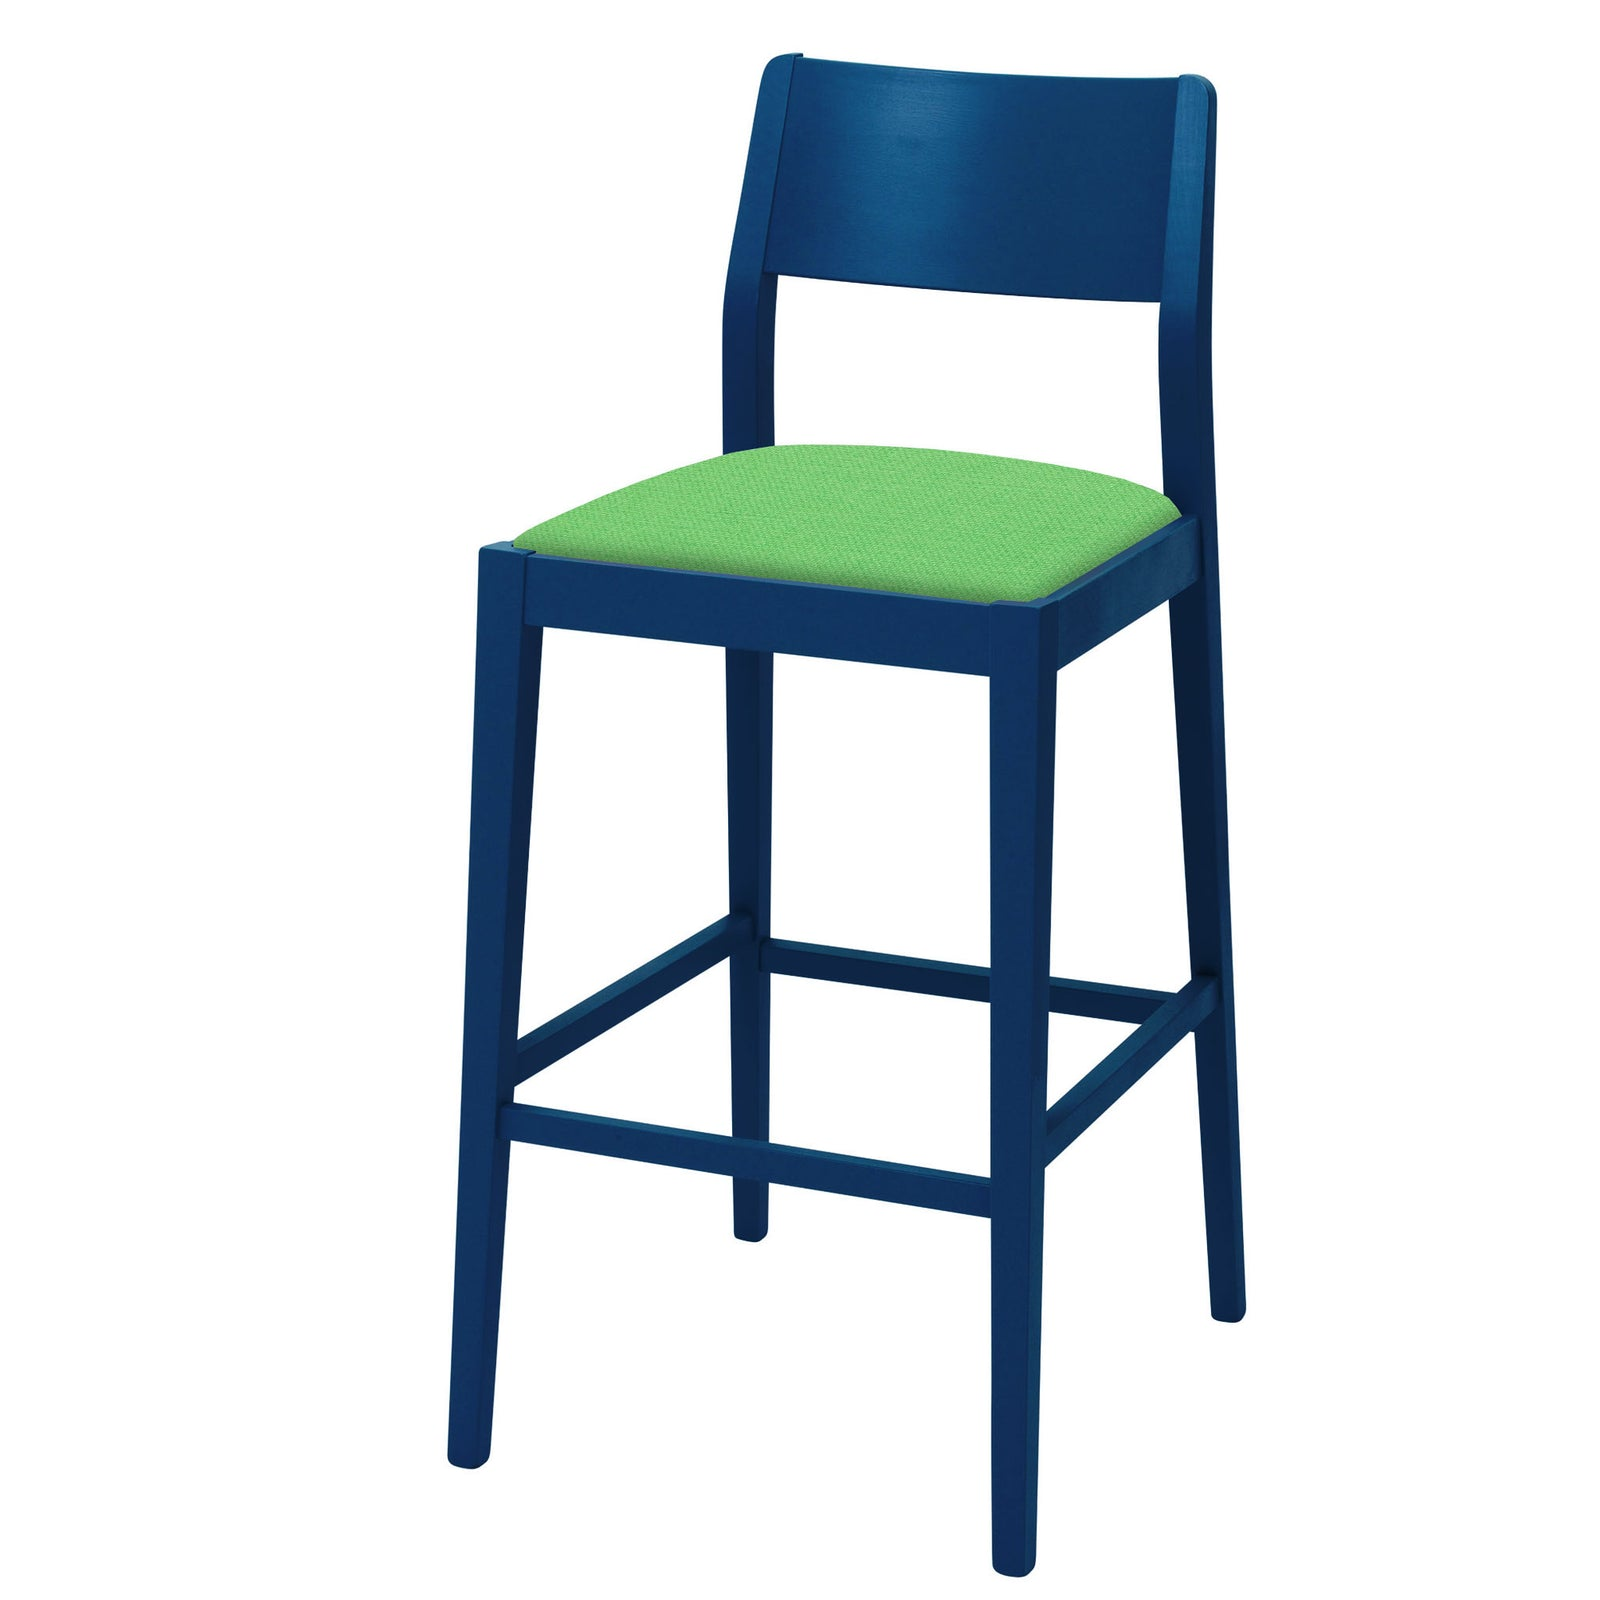 James Shaker Style Bar Stool designed to Colour Match the colour scheme in your own home